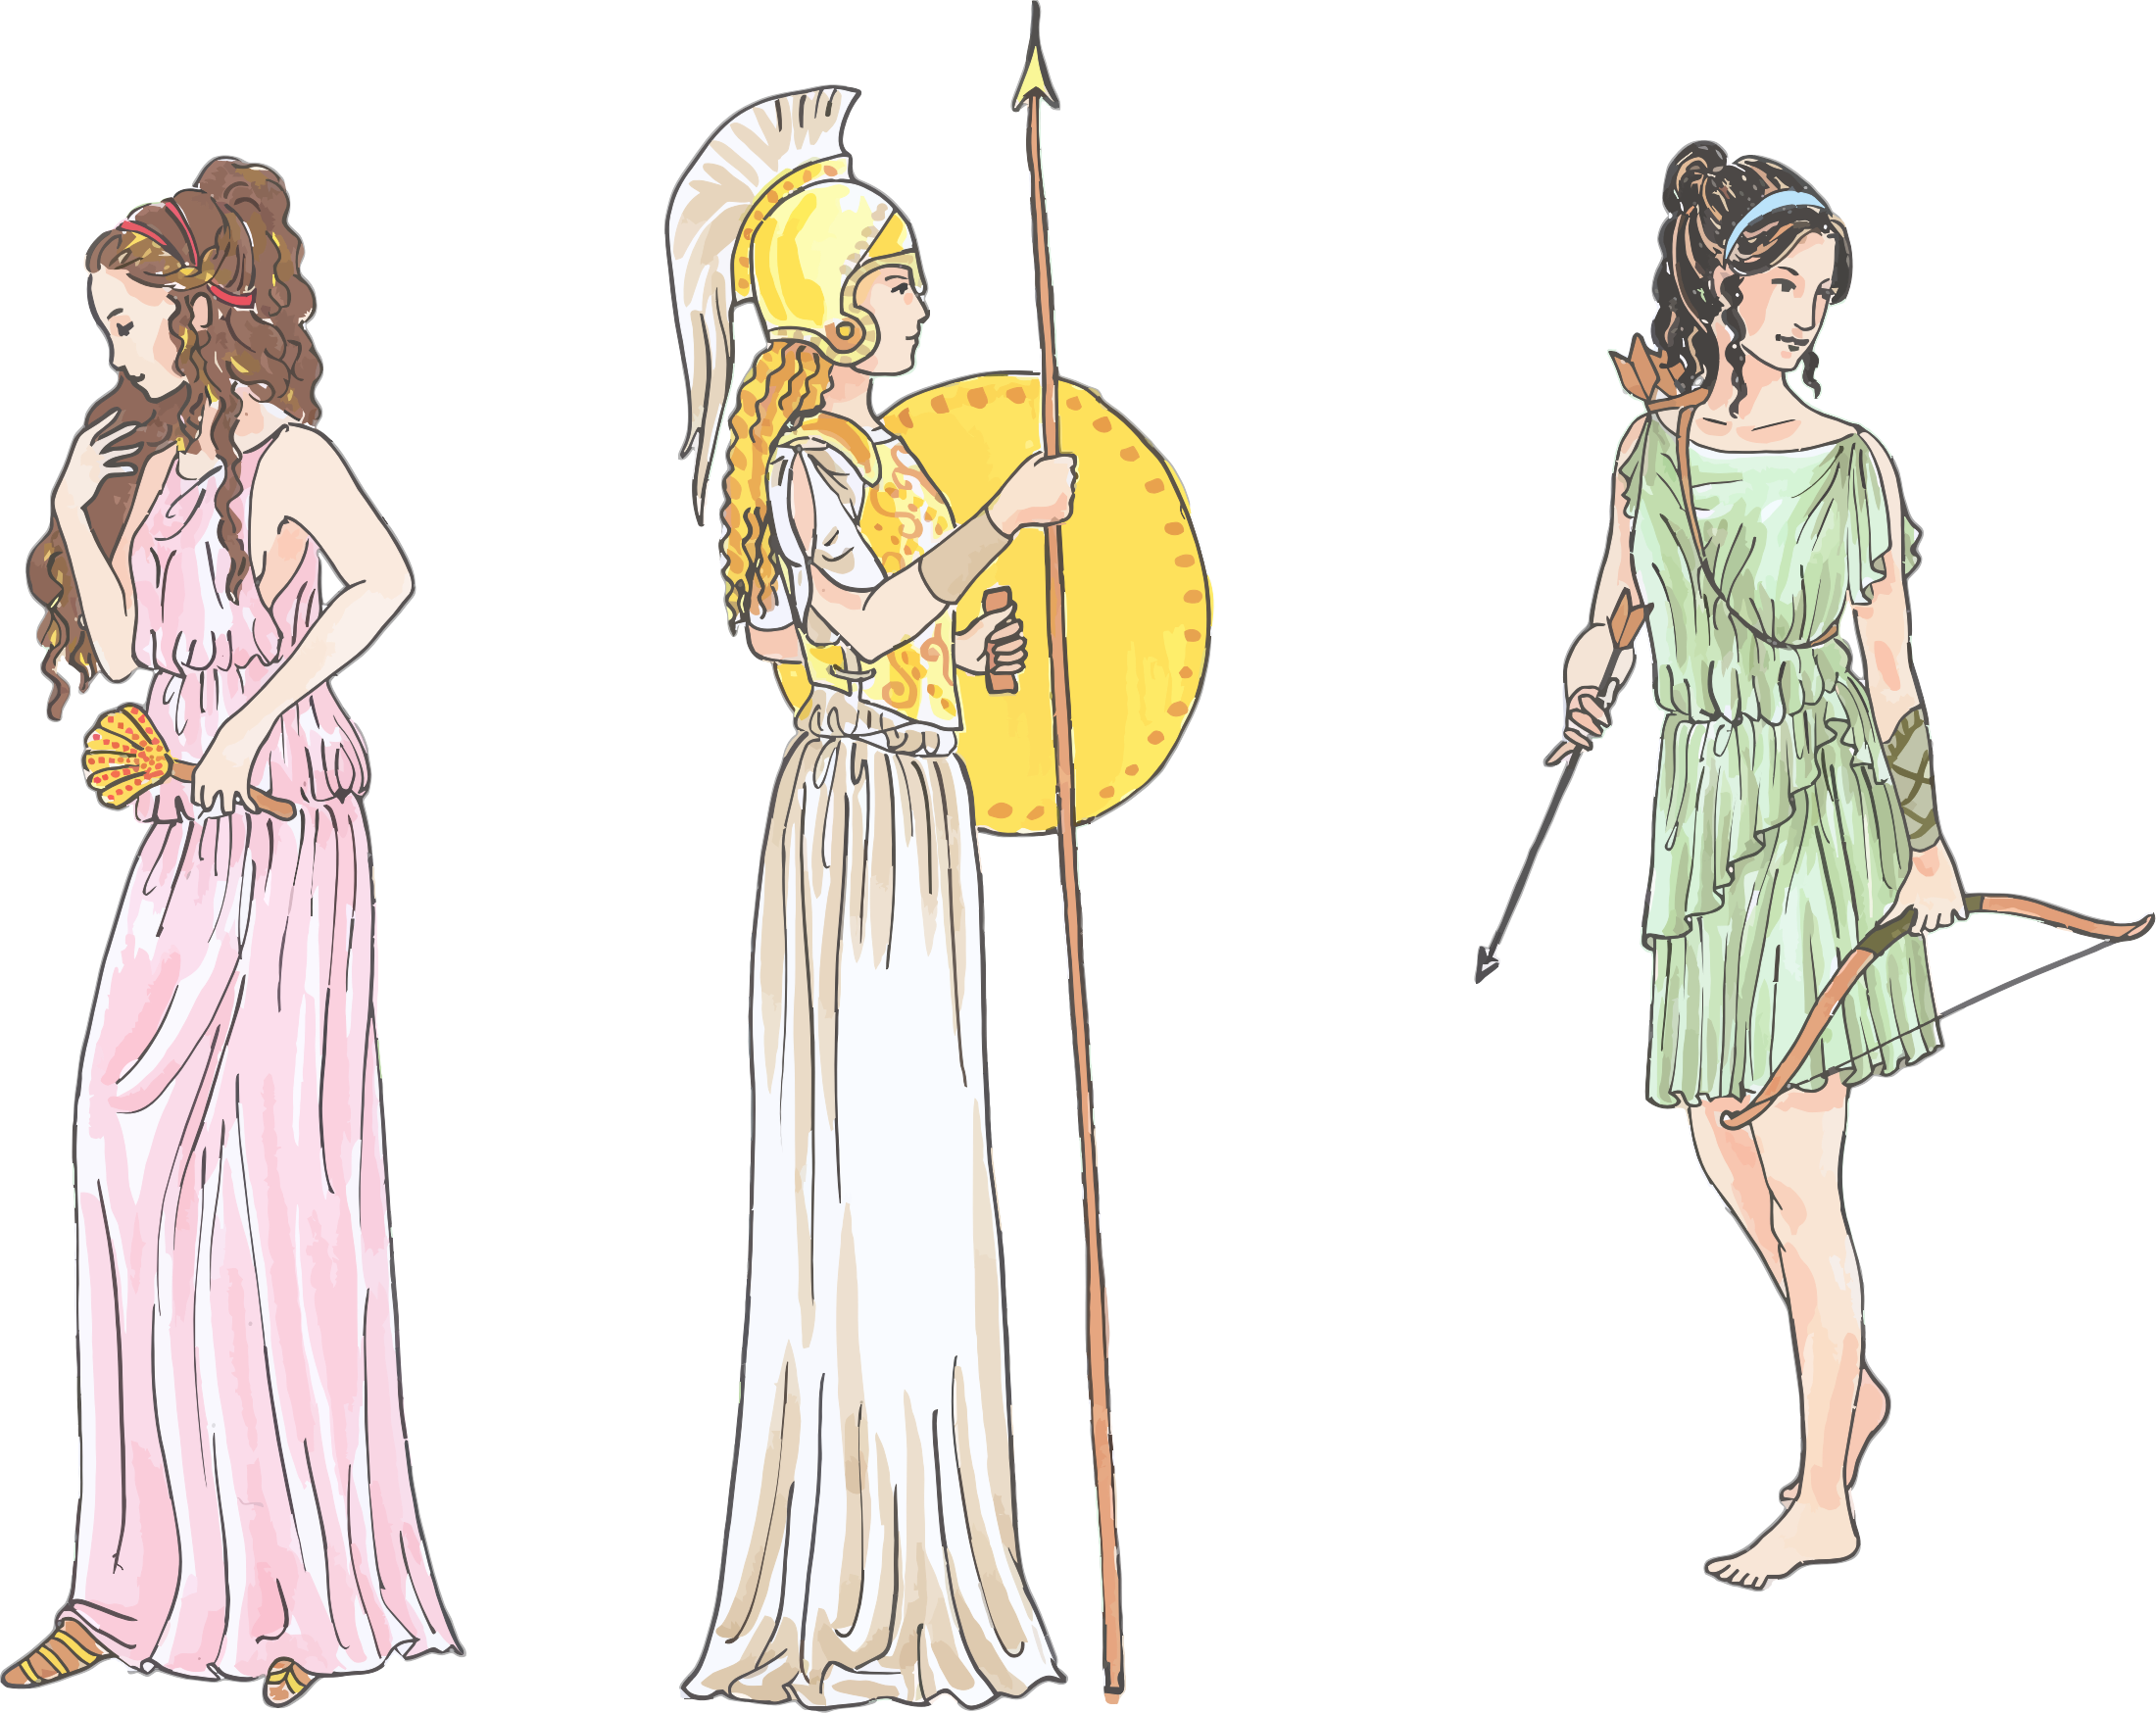 Female Mythological Figures by GDJ